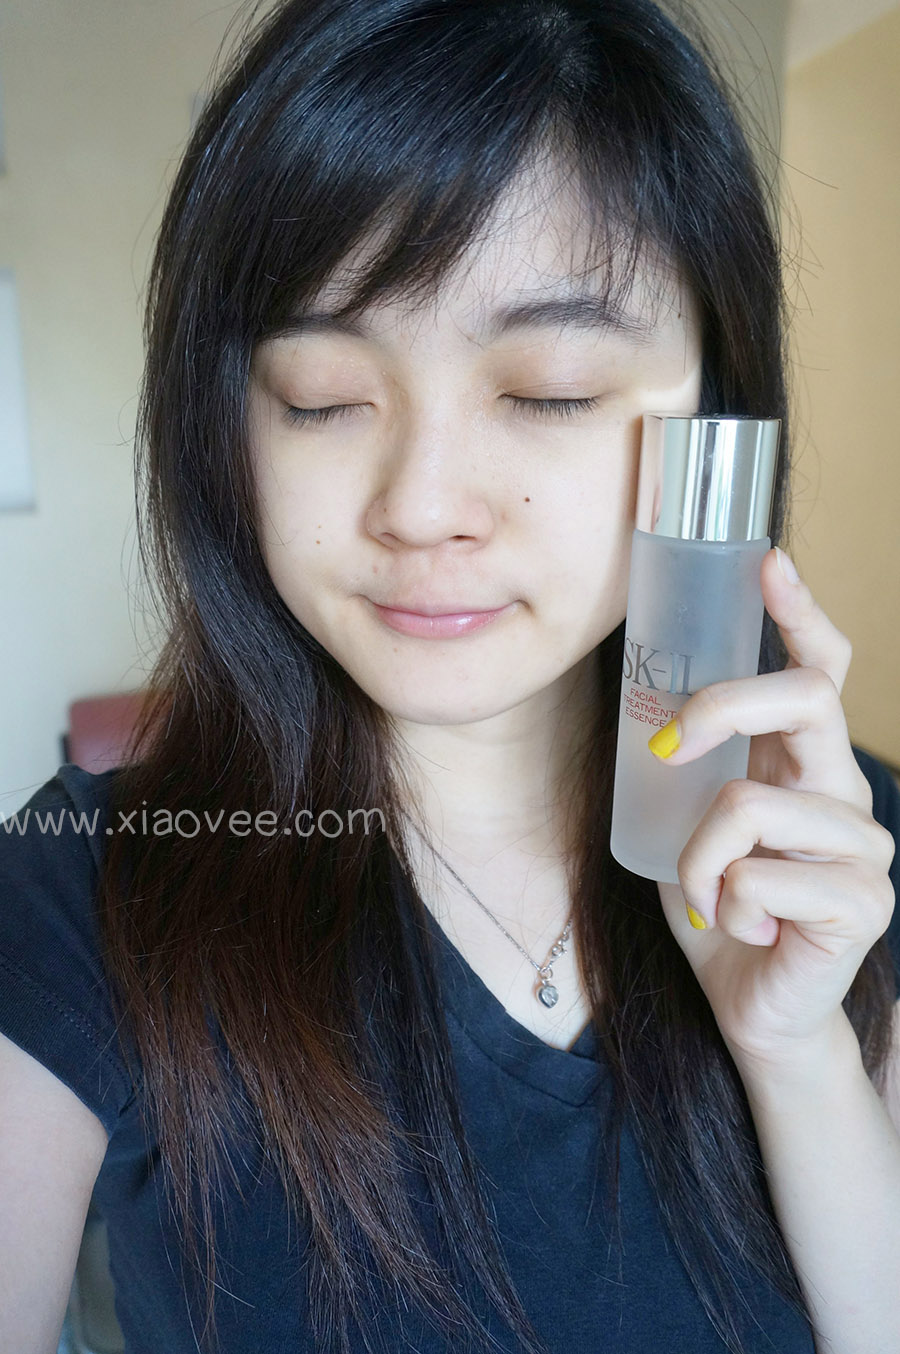 SKII, SK-II, SK II, facial treatment essence, pitera, review